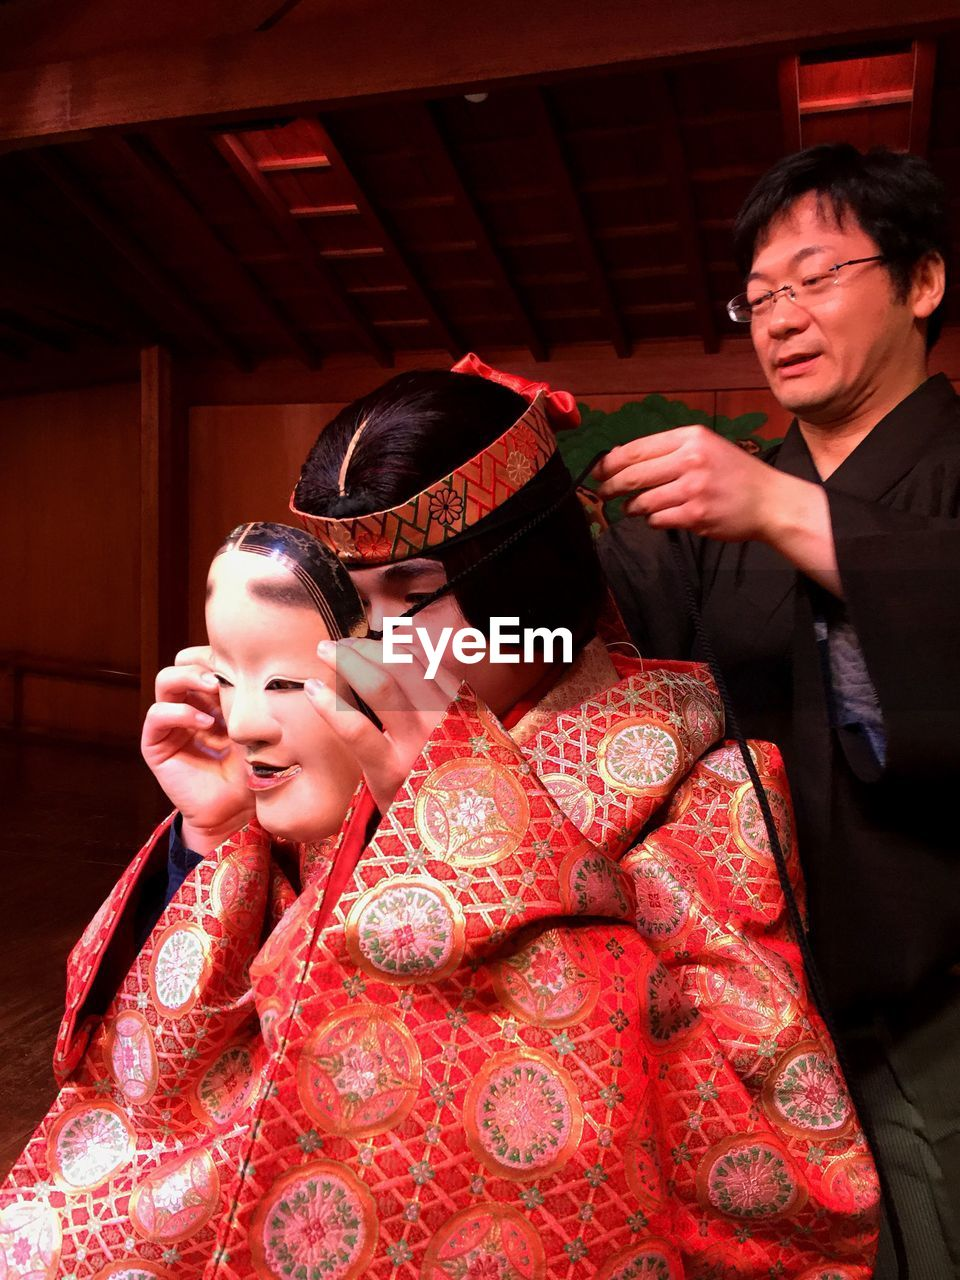 traditional clothing, real people, kimono, cultures, smiling, costume, two people, togetherness, young adult, lifestyles, happiness, tradition, history, celebration, indoors, leisure activity, young women, bonding, cheerful, ceremony, period costume, day